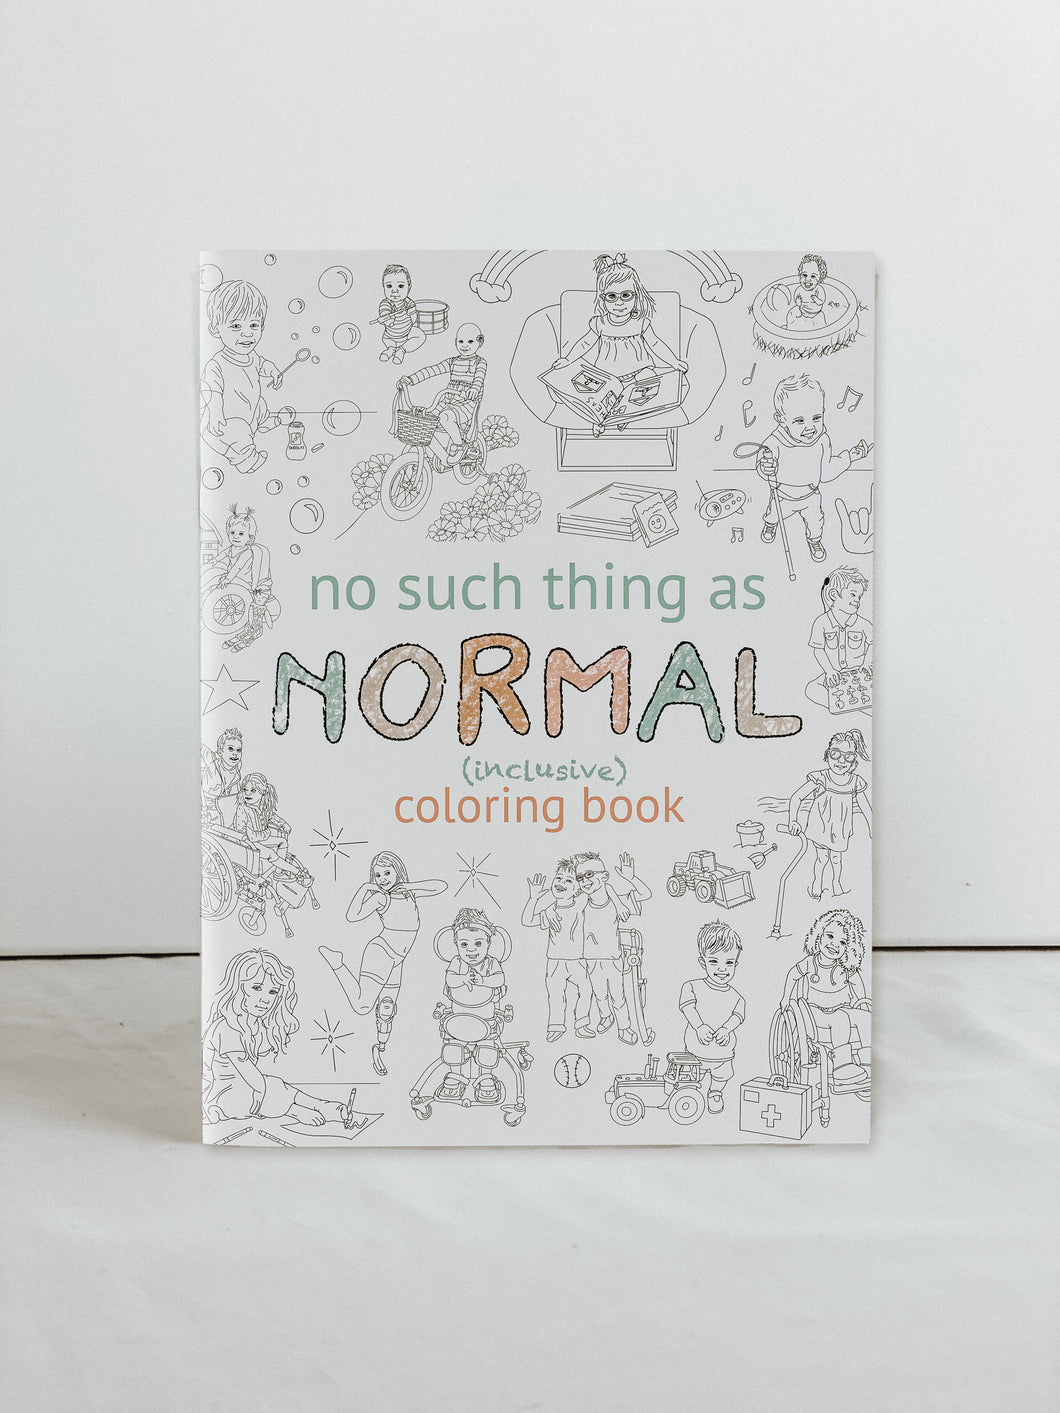 Inclusive Coloring Book